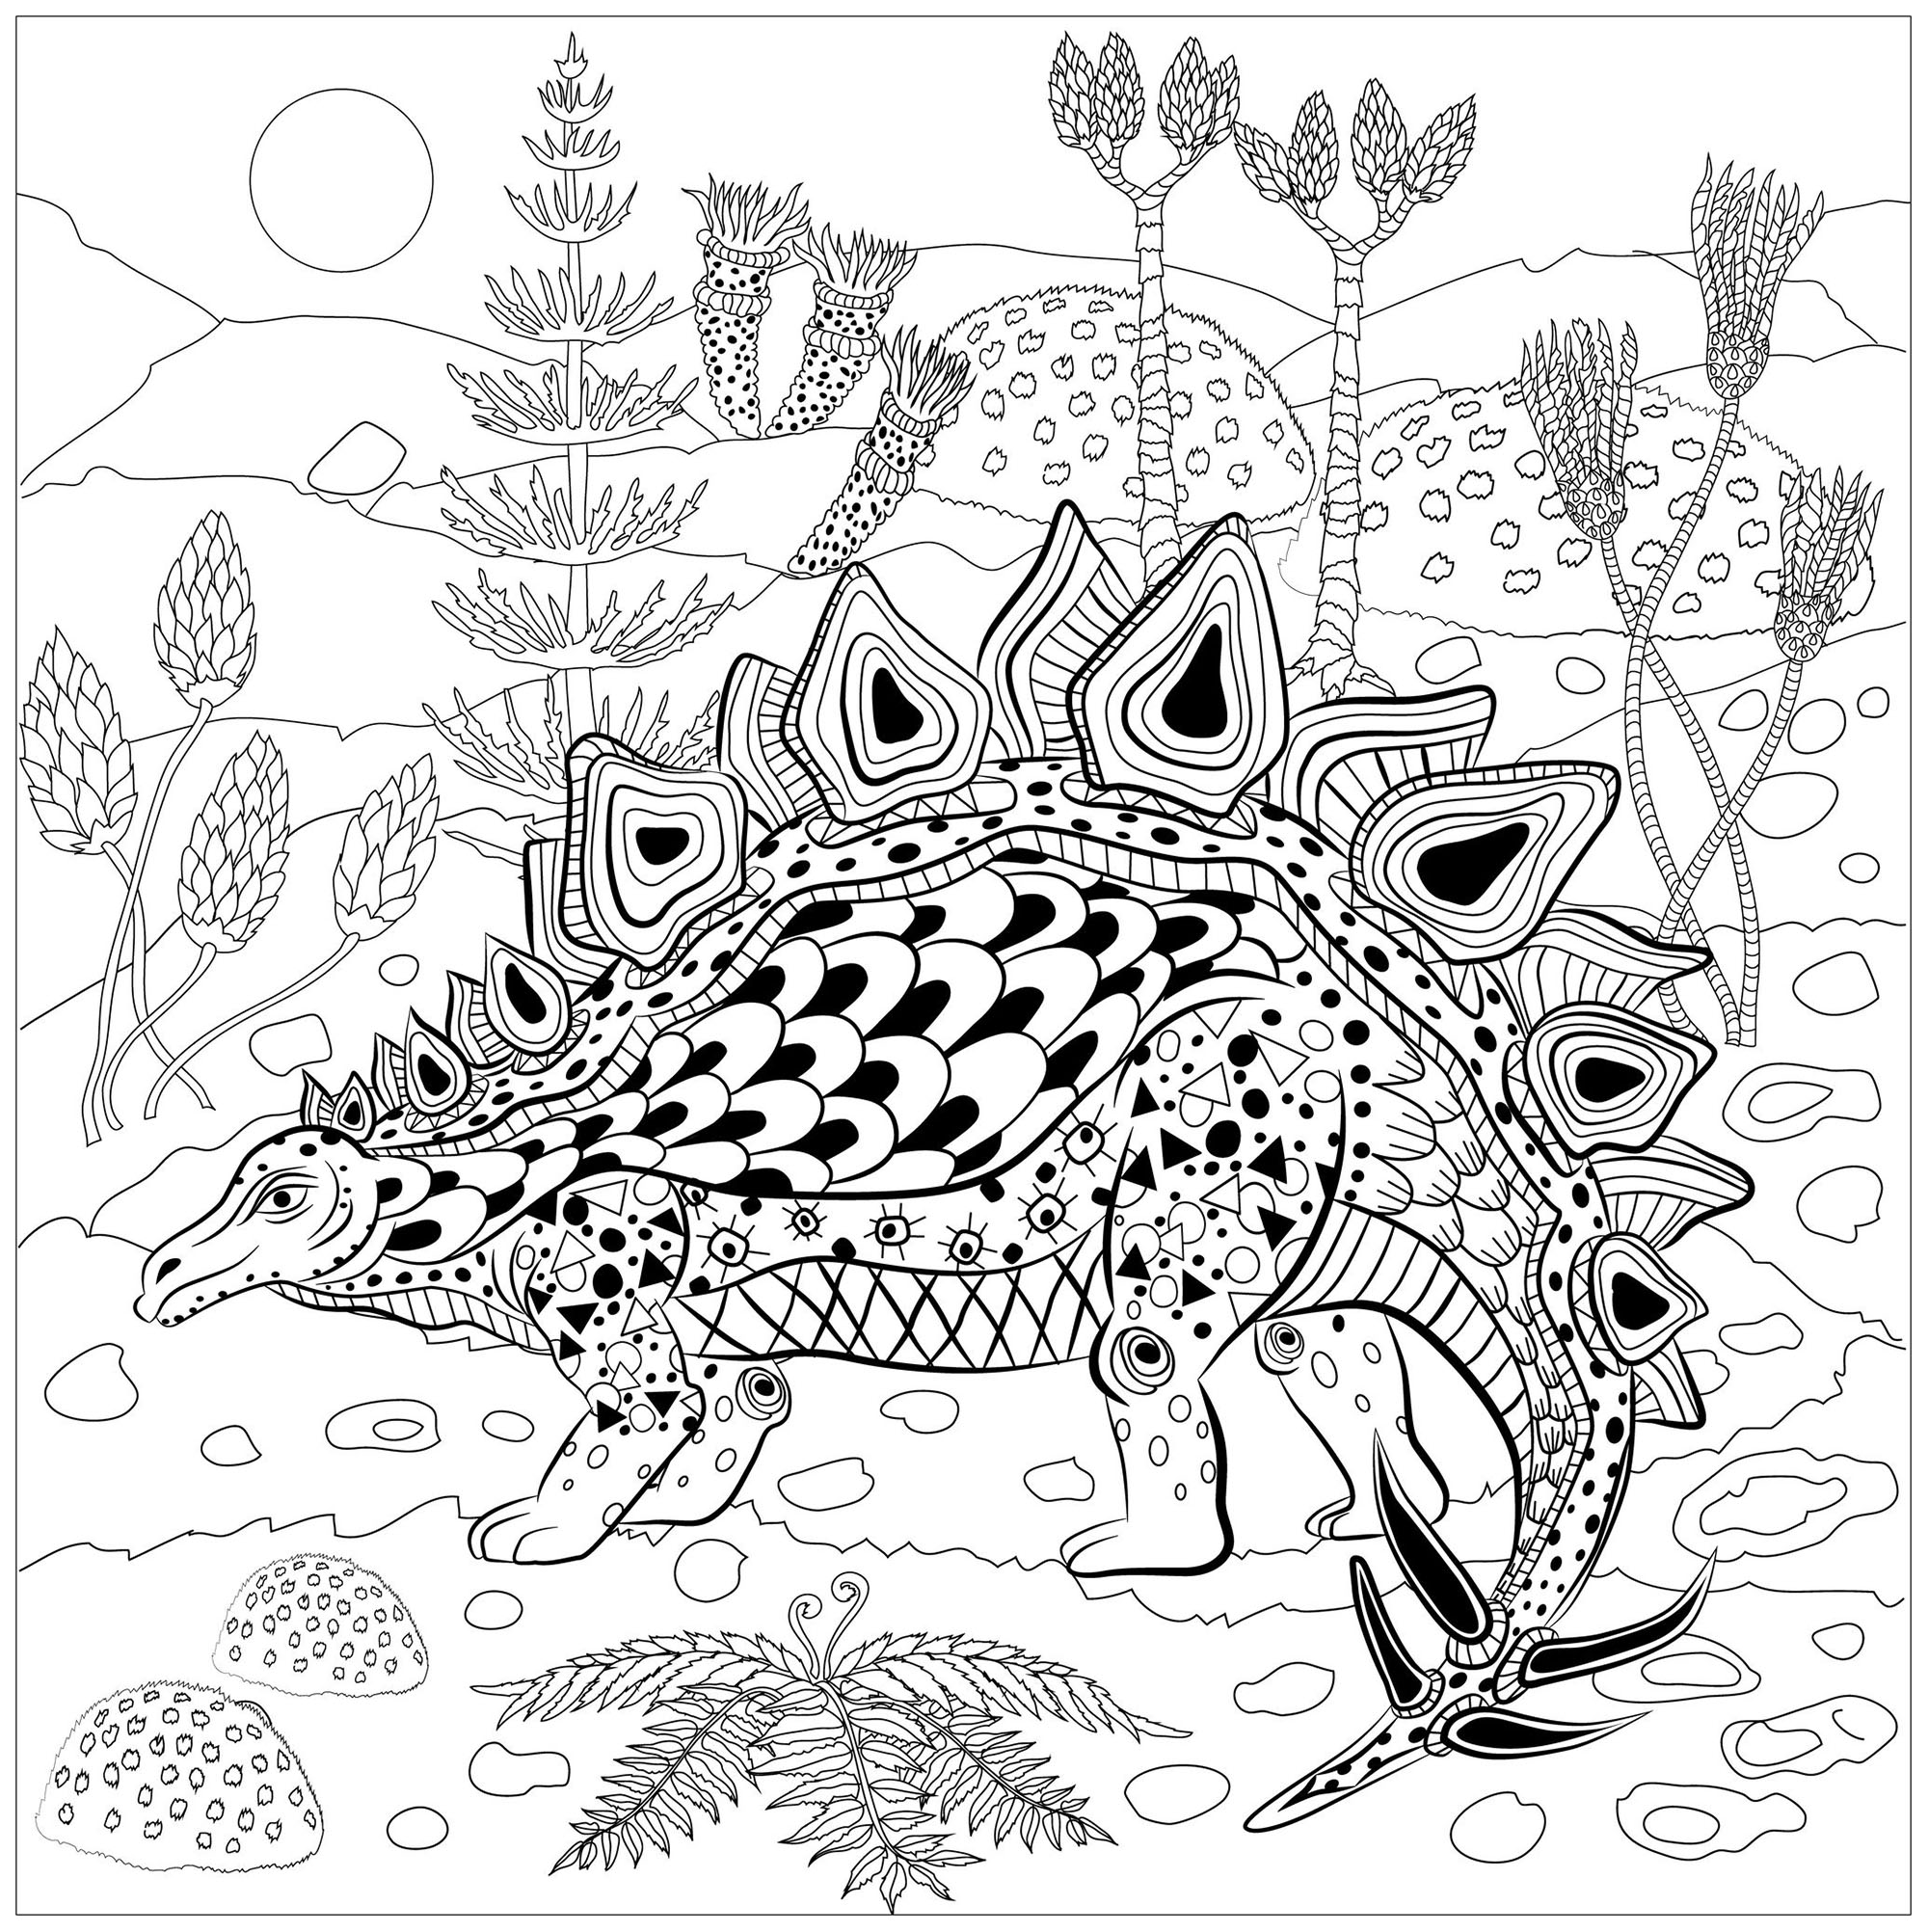 Stegosaurus In Nature - Dinosaurs Adult Coloring Pages